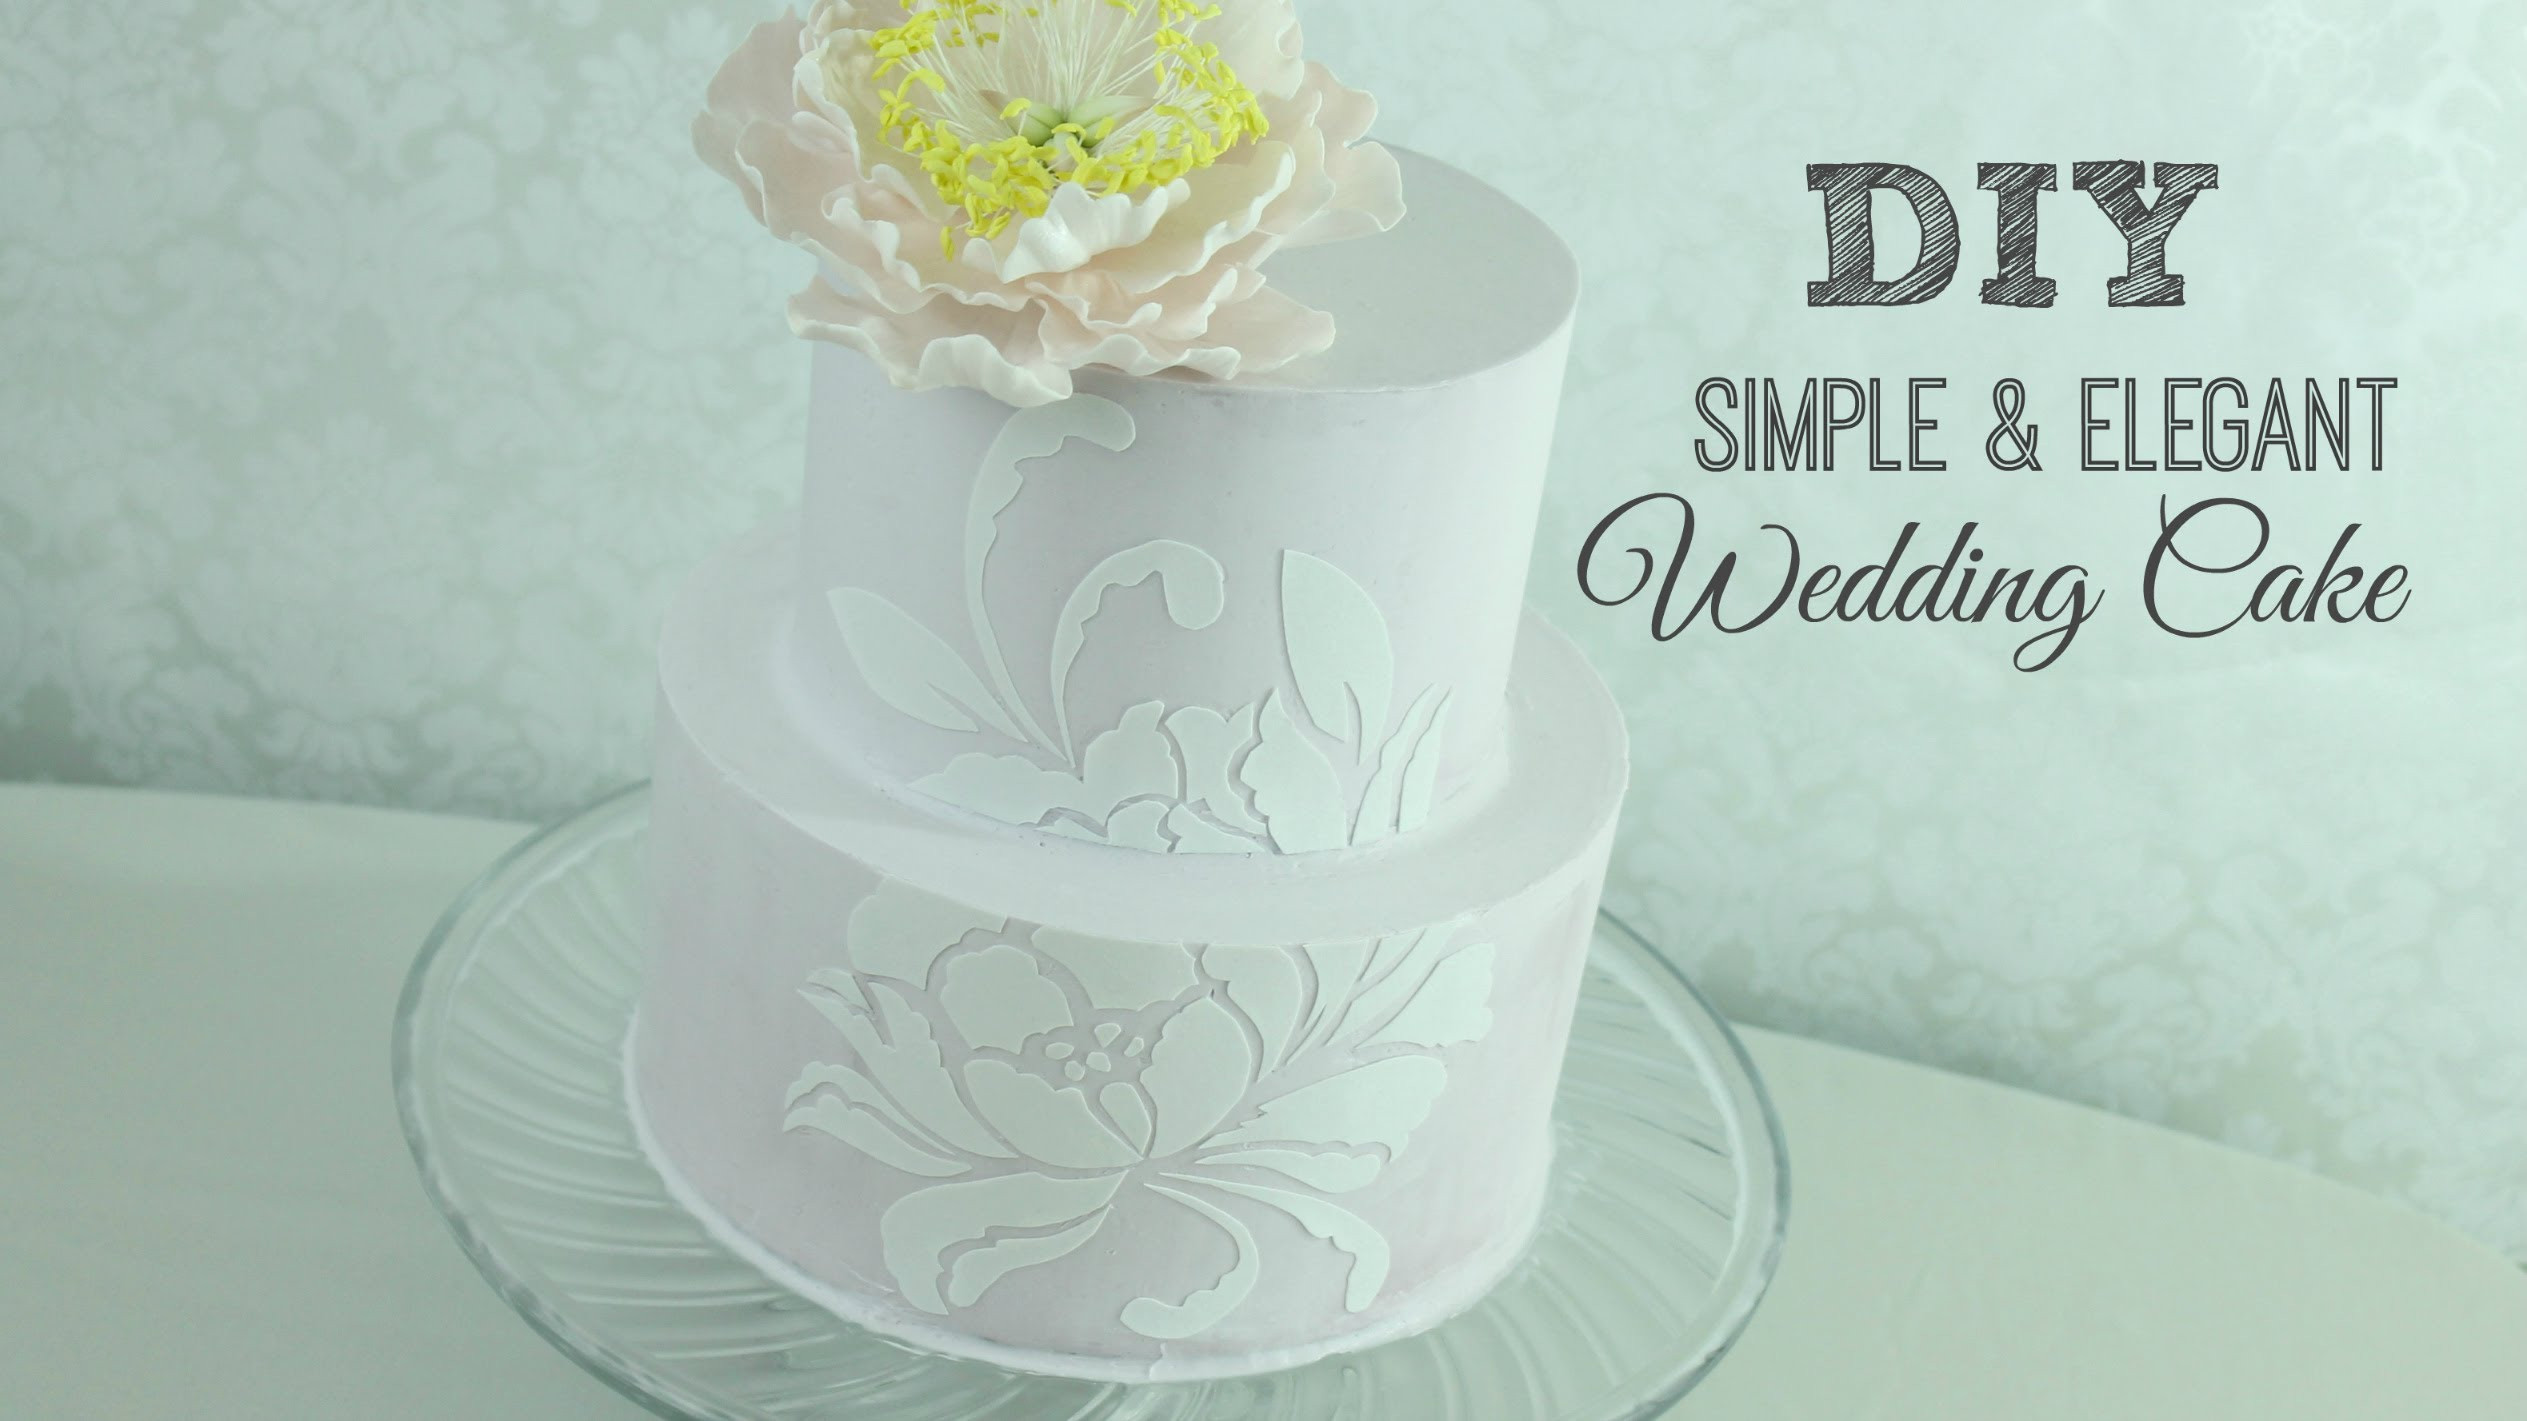 Easy Wedding Cakes To Make Yourself  Easy wedding cakes to make yourself idea in 2017